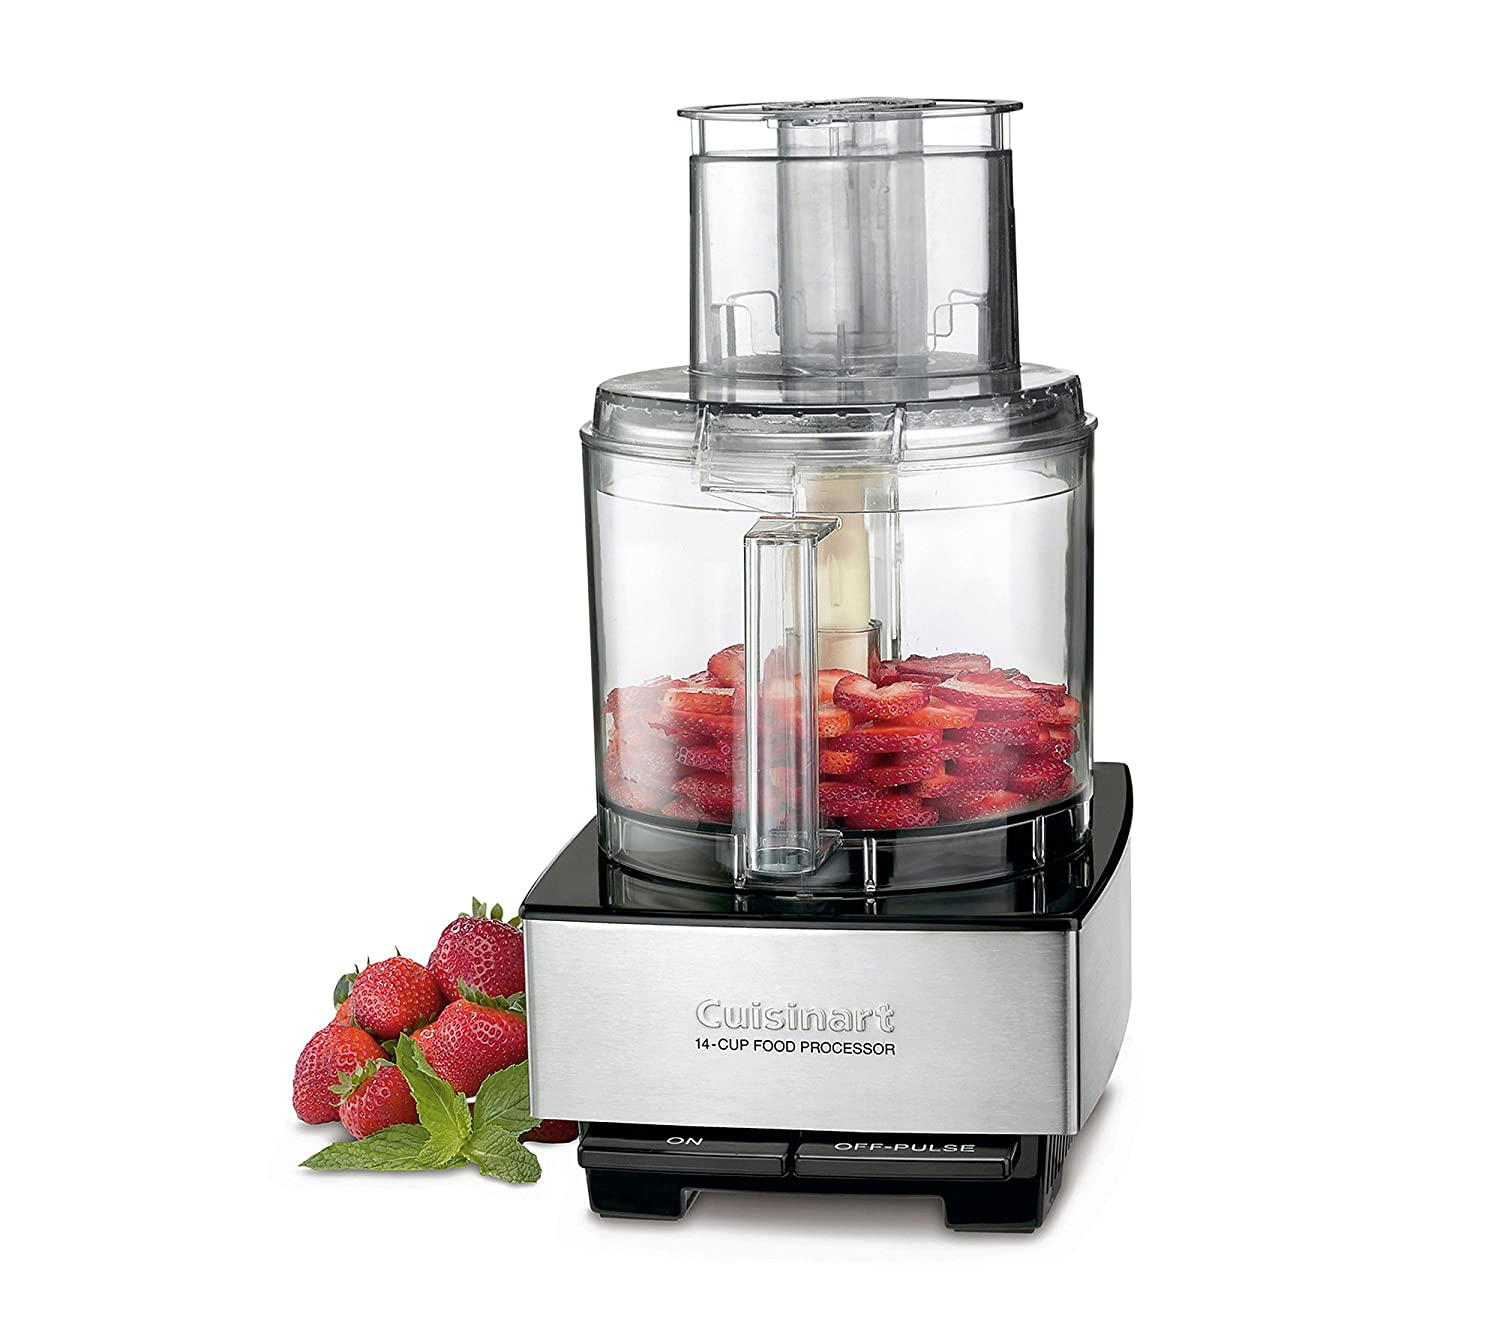 Cuisinart 14-Cup Food Processor Silver